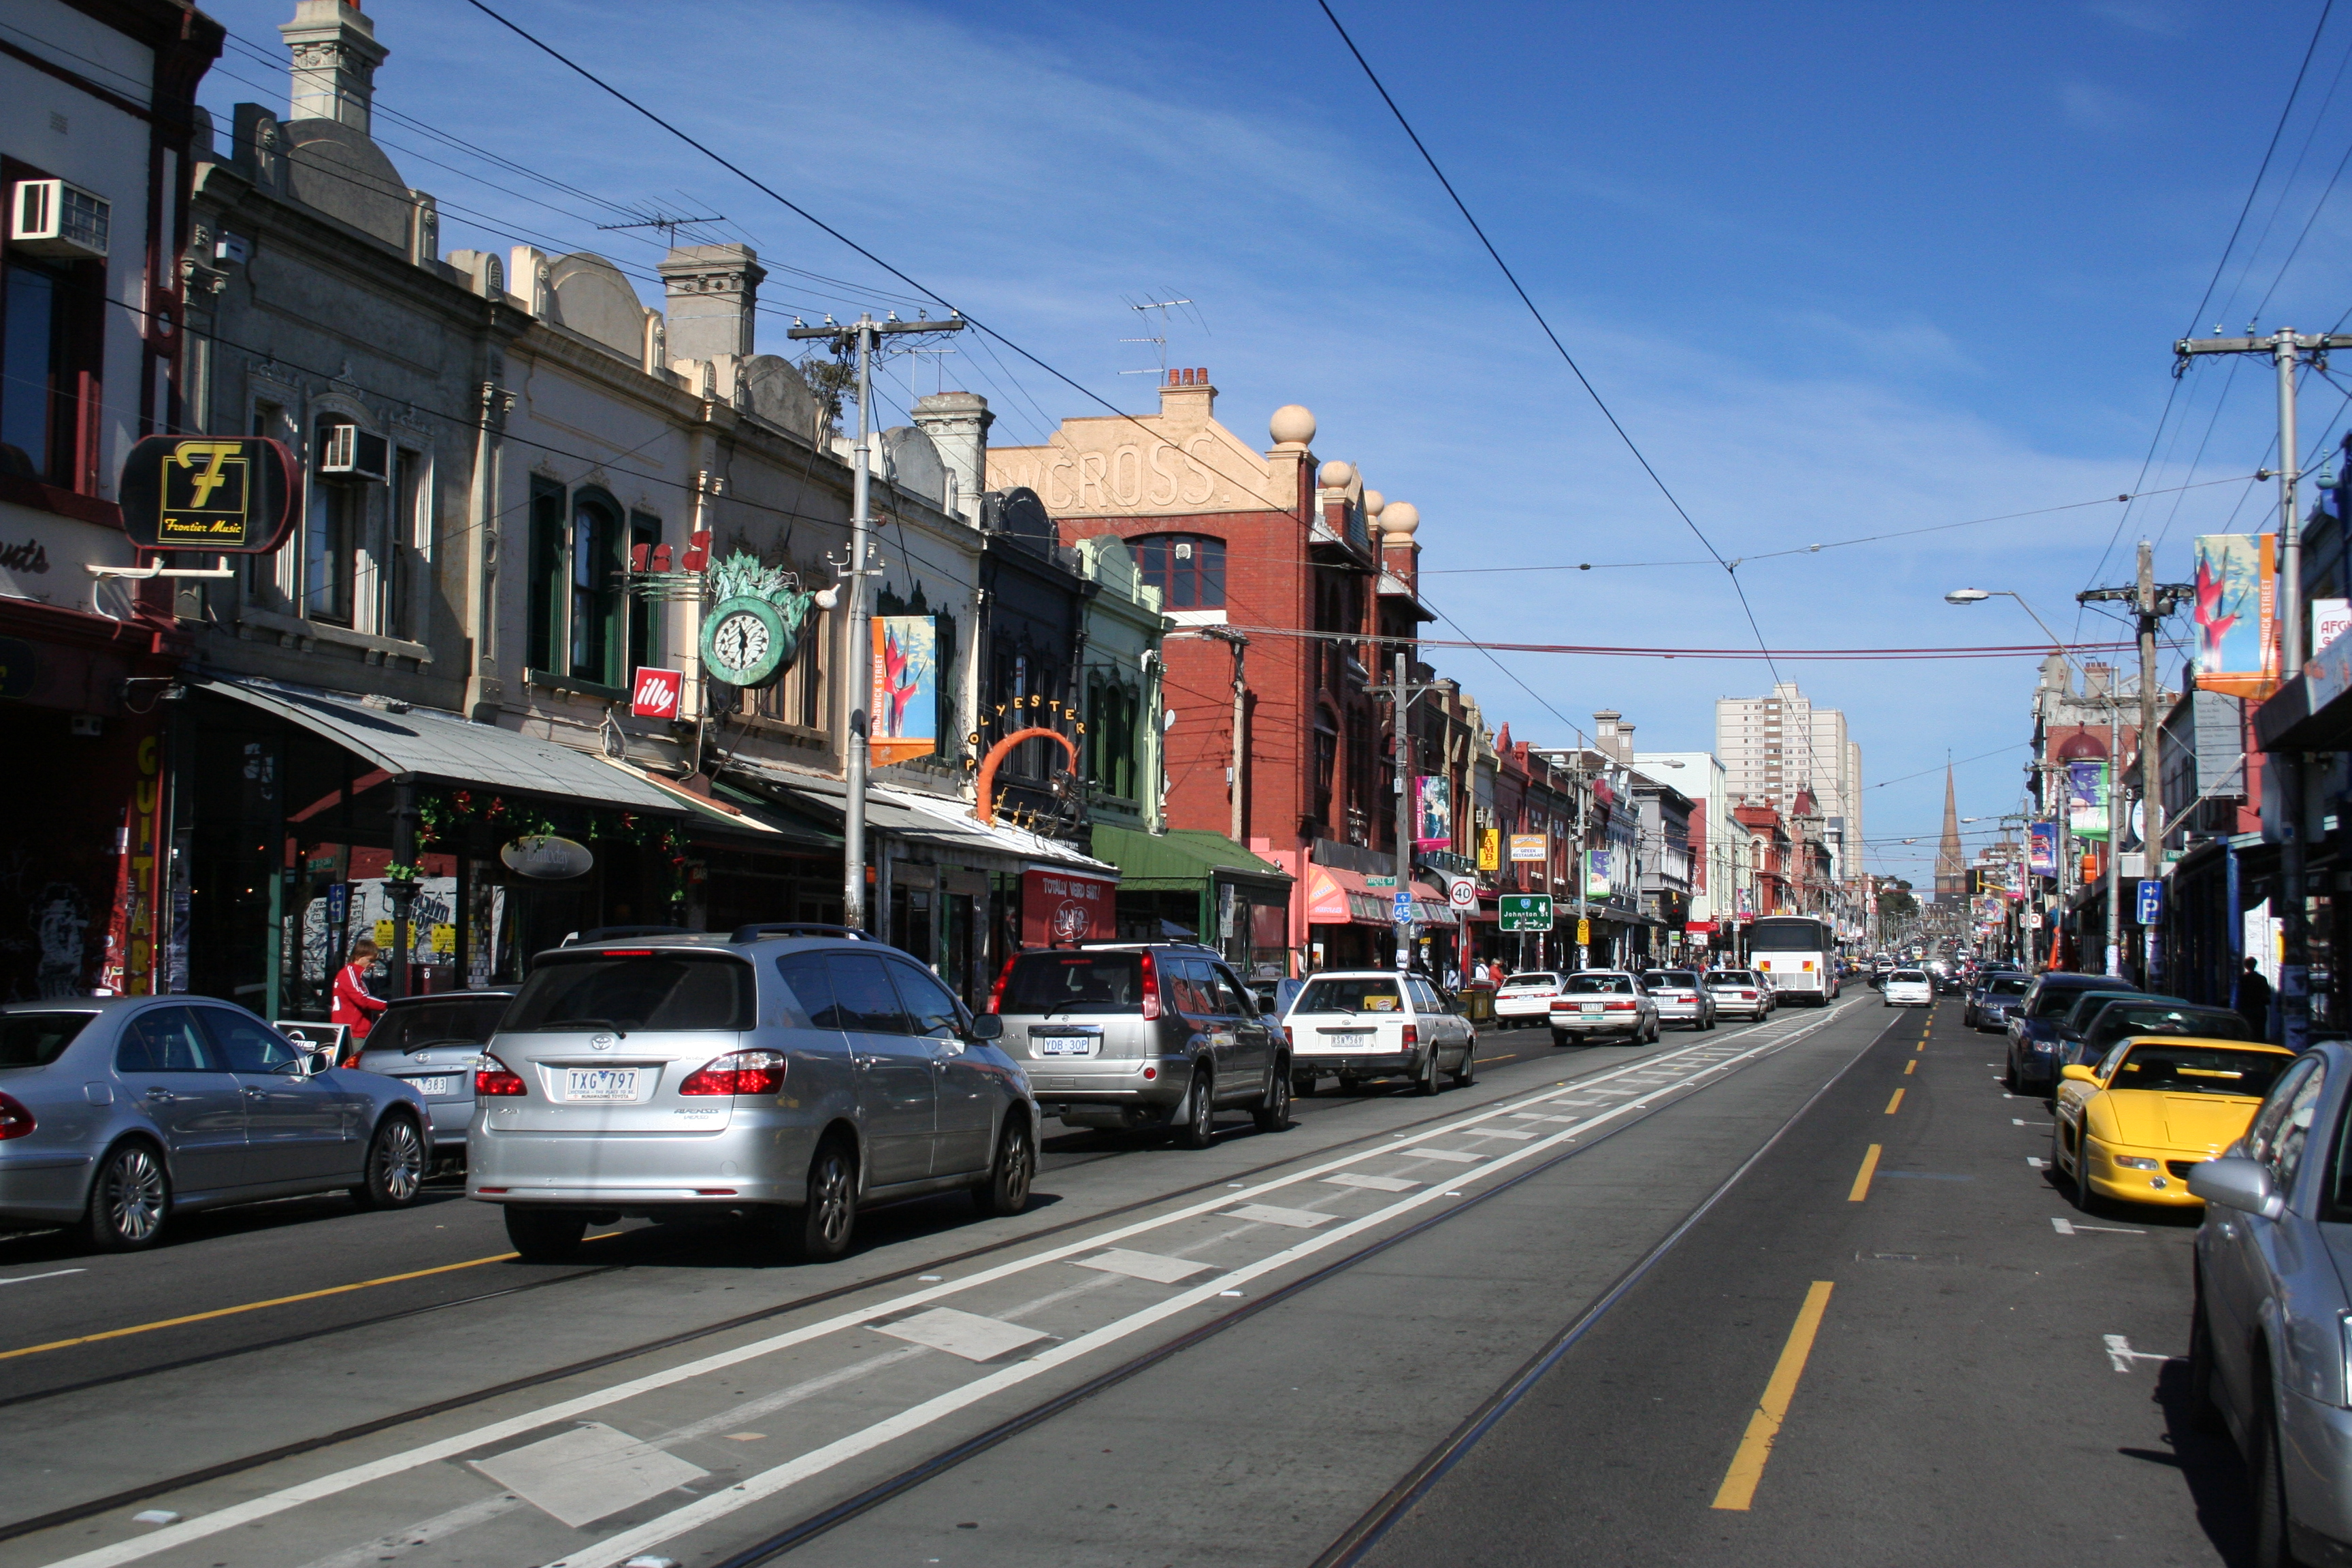 Brunswick Street in Fitzroy Australia on a sunny day, with Fitzroy parking spots filled with cars